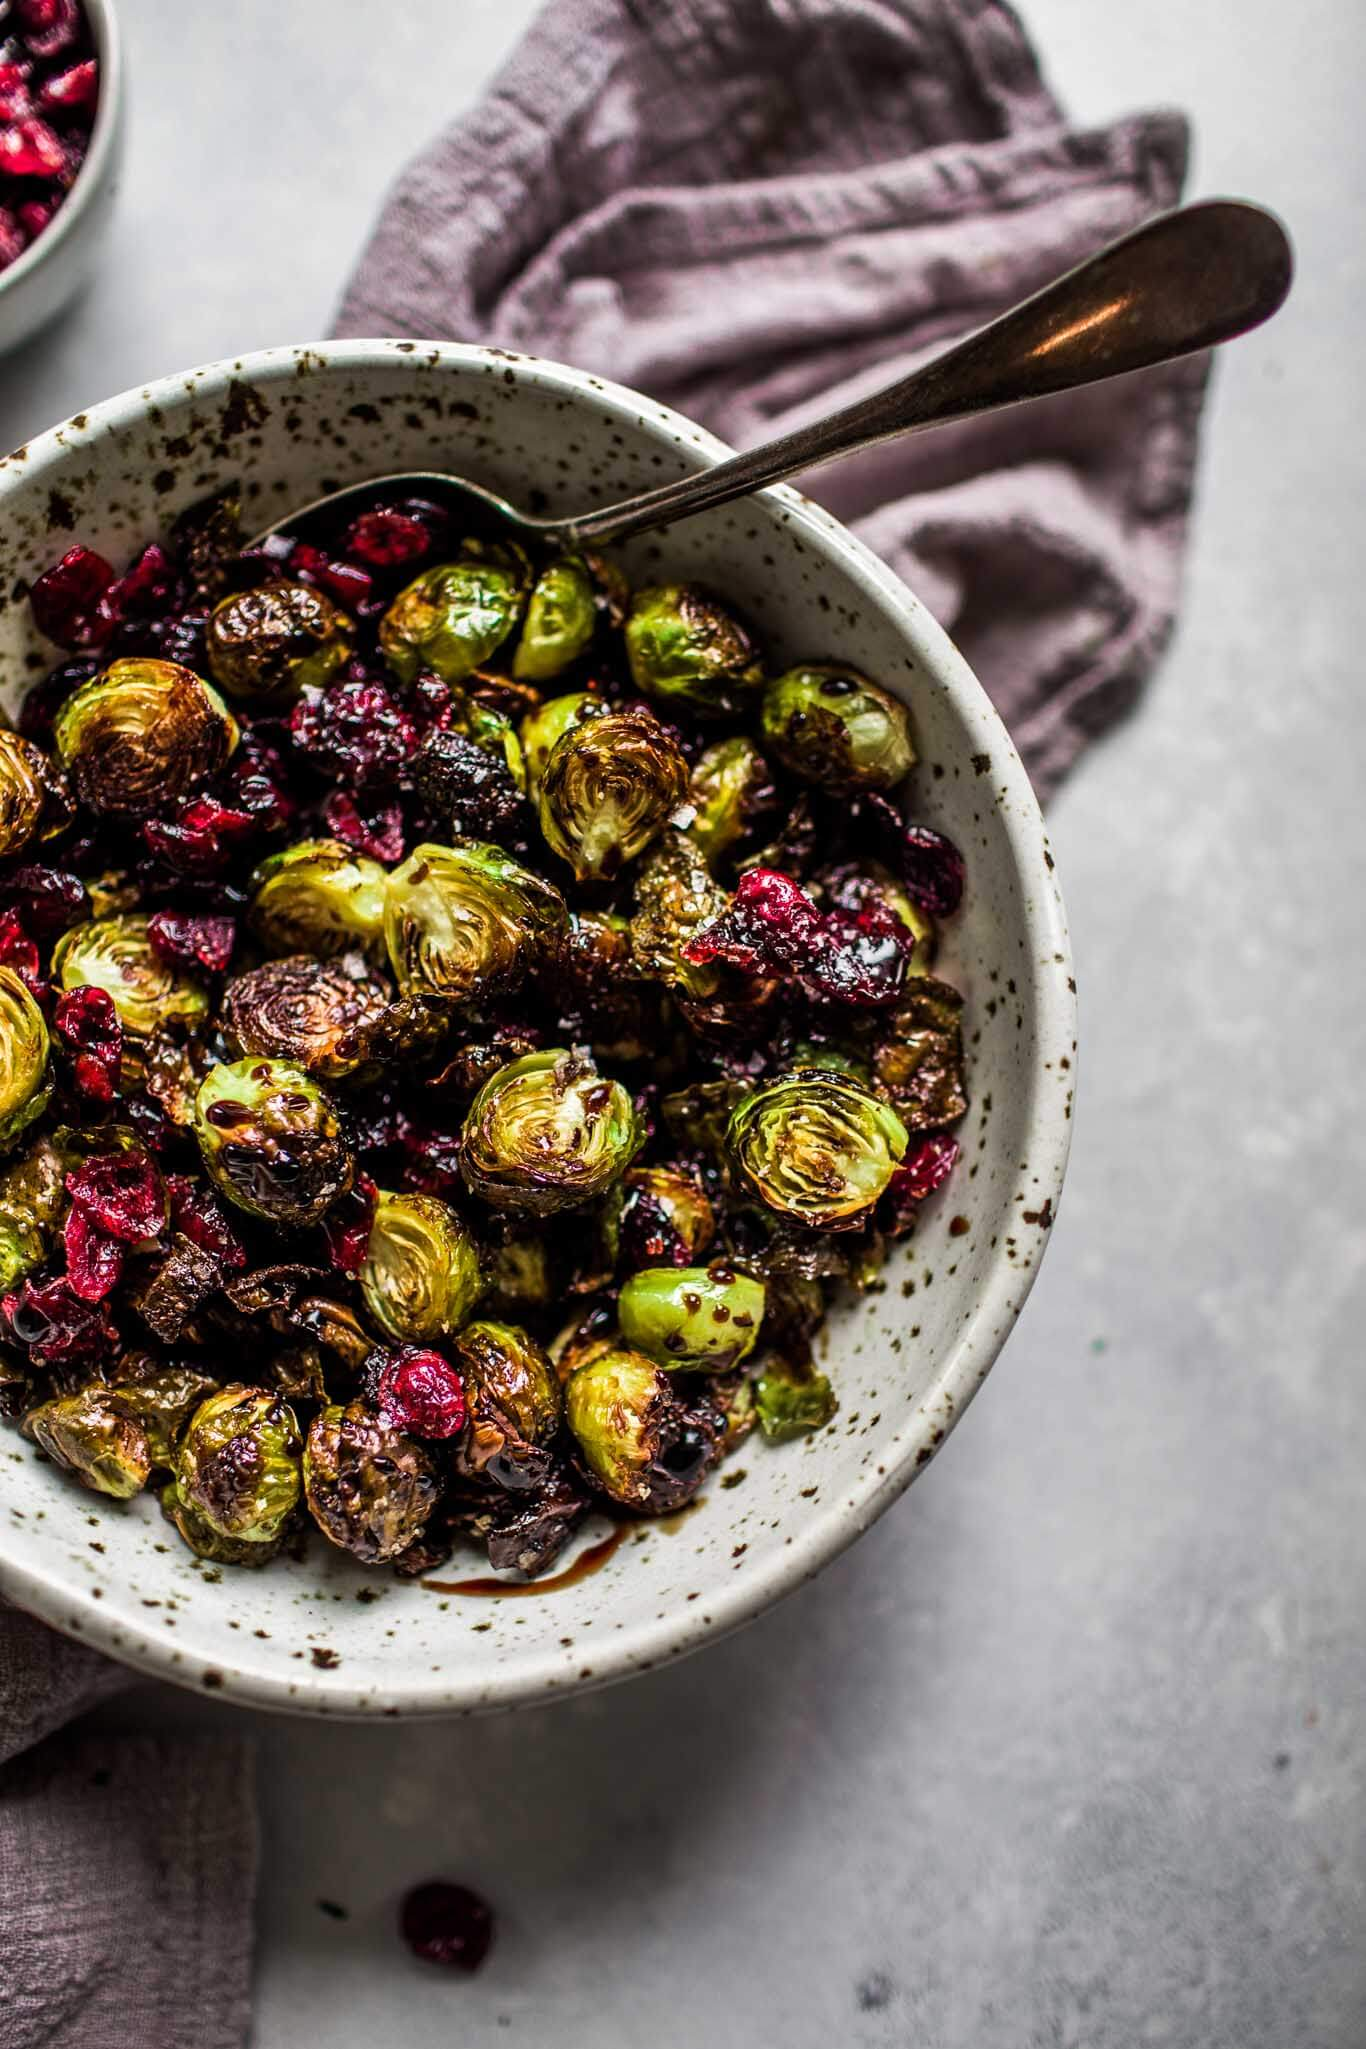 Bowl of roasted brussels sprouts with balsamic reduction & cranberries.